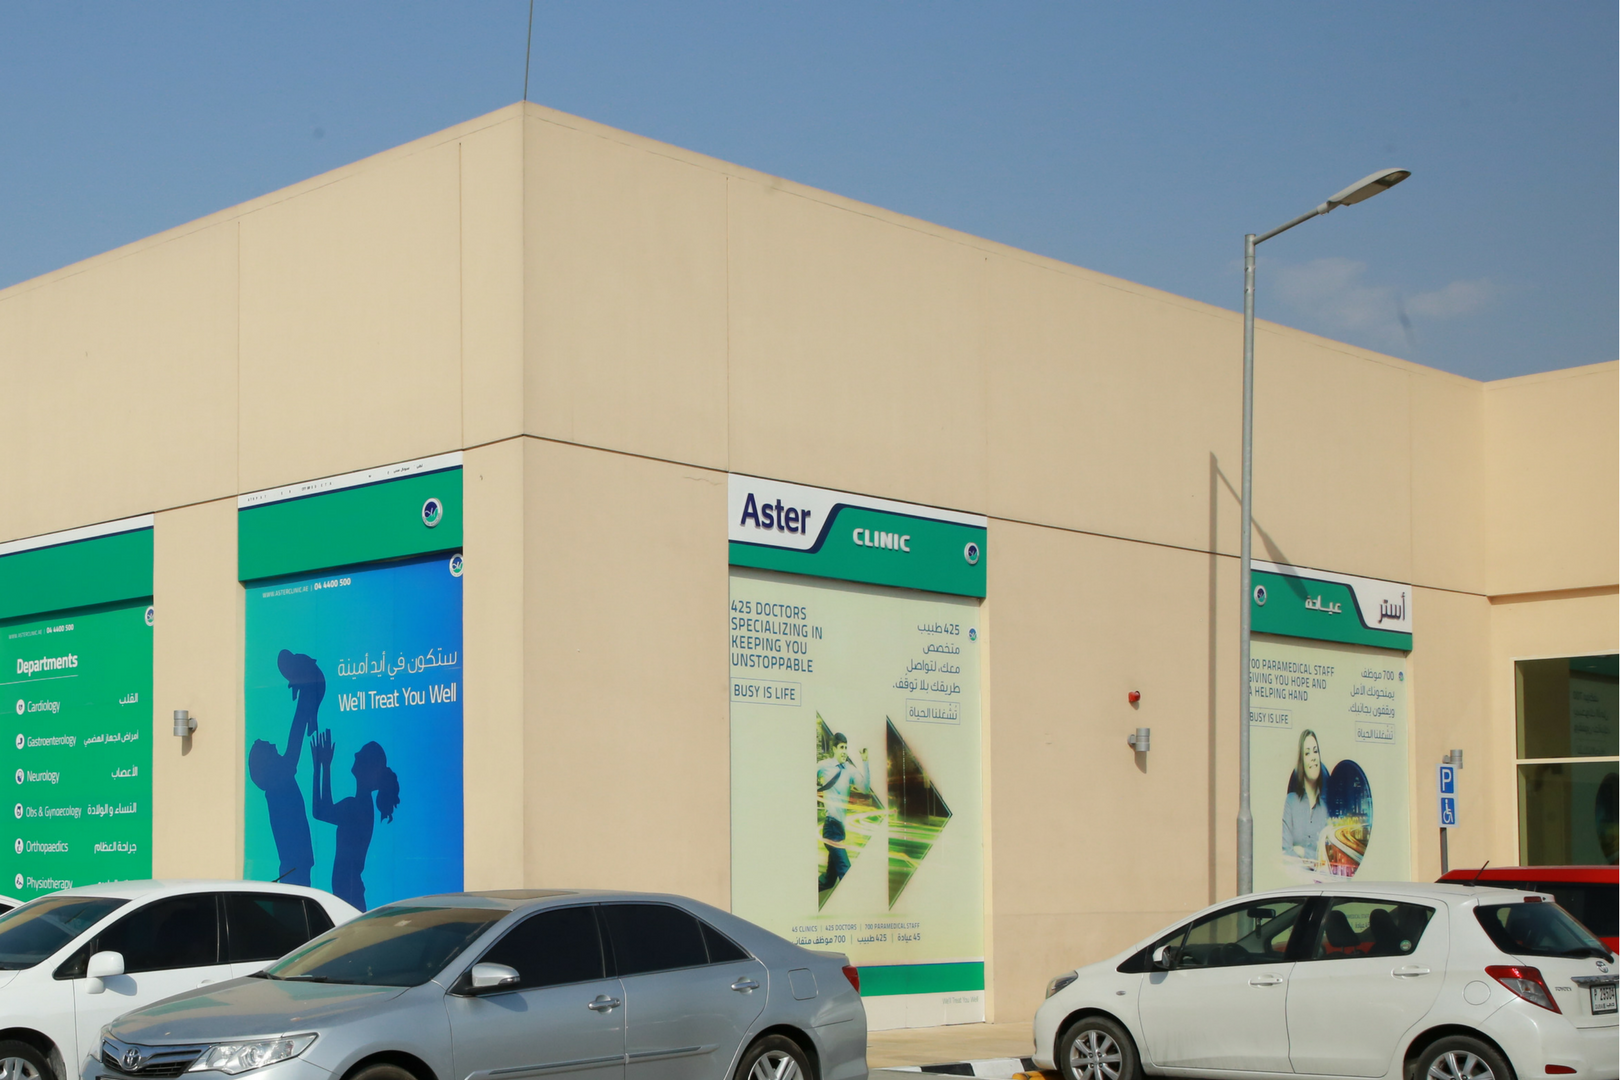 Aster Specialty Clinic, International city (Pavilion Mall, France Cluster)